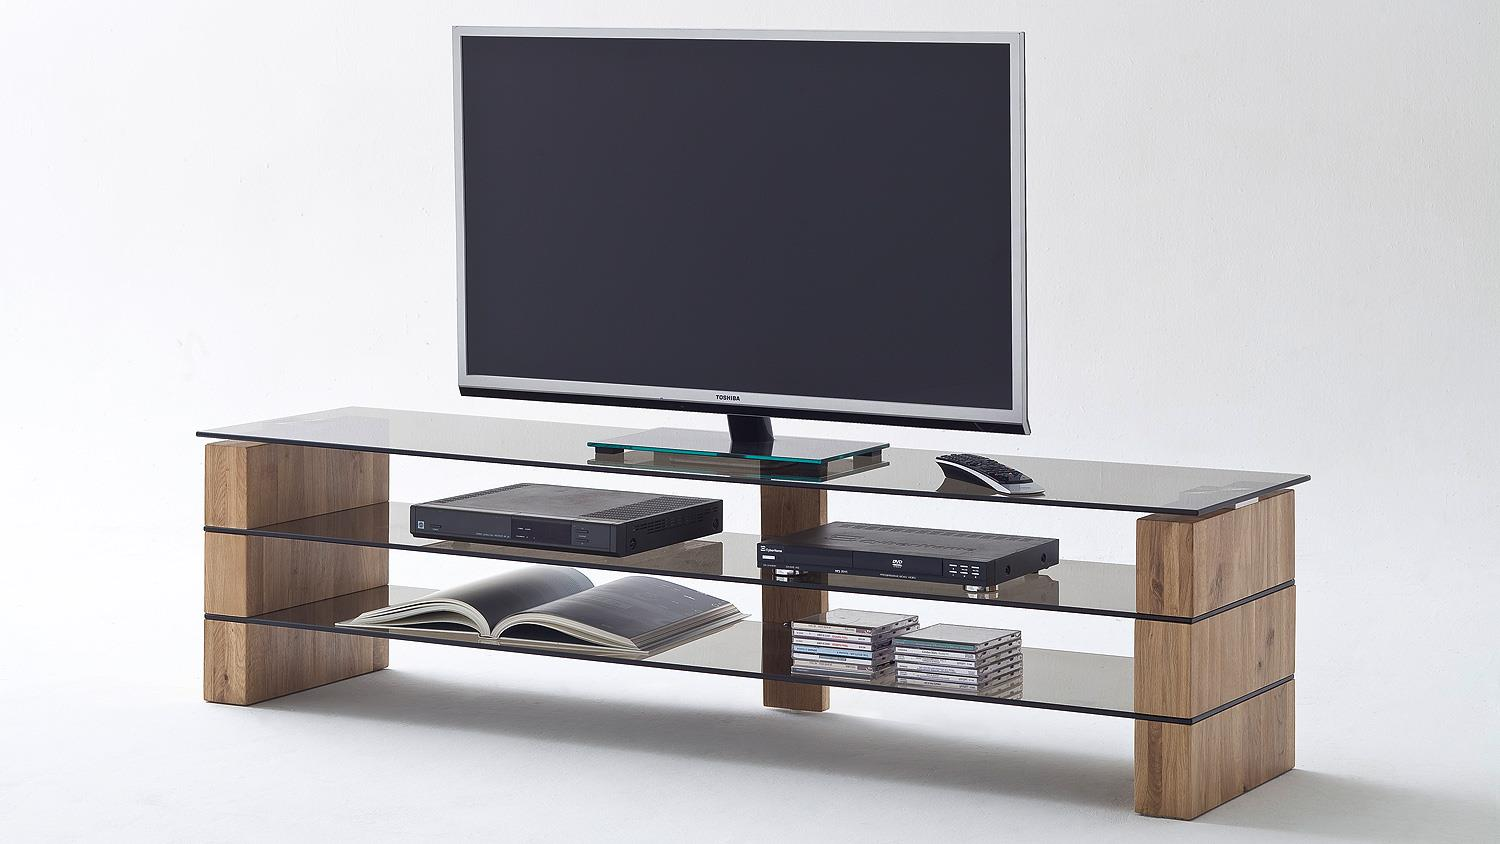 Tv rack kari tv board lowboard in eiche massiv glas grau 140 for Instore mobel martin